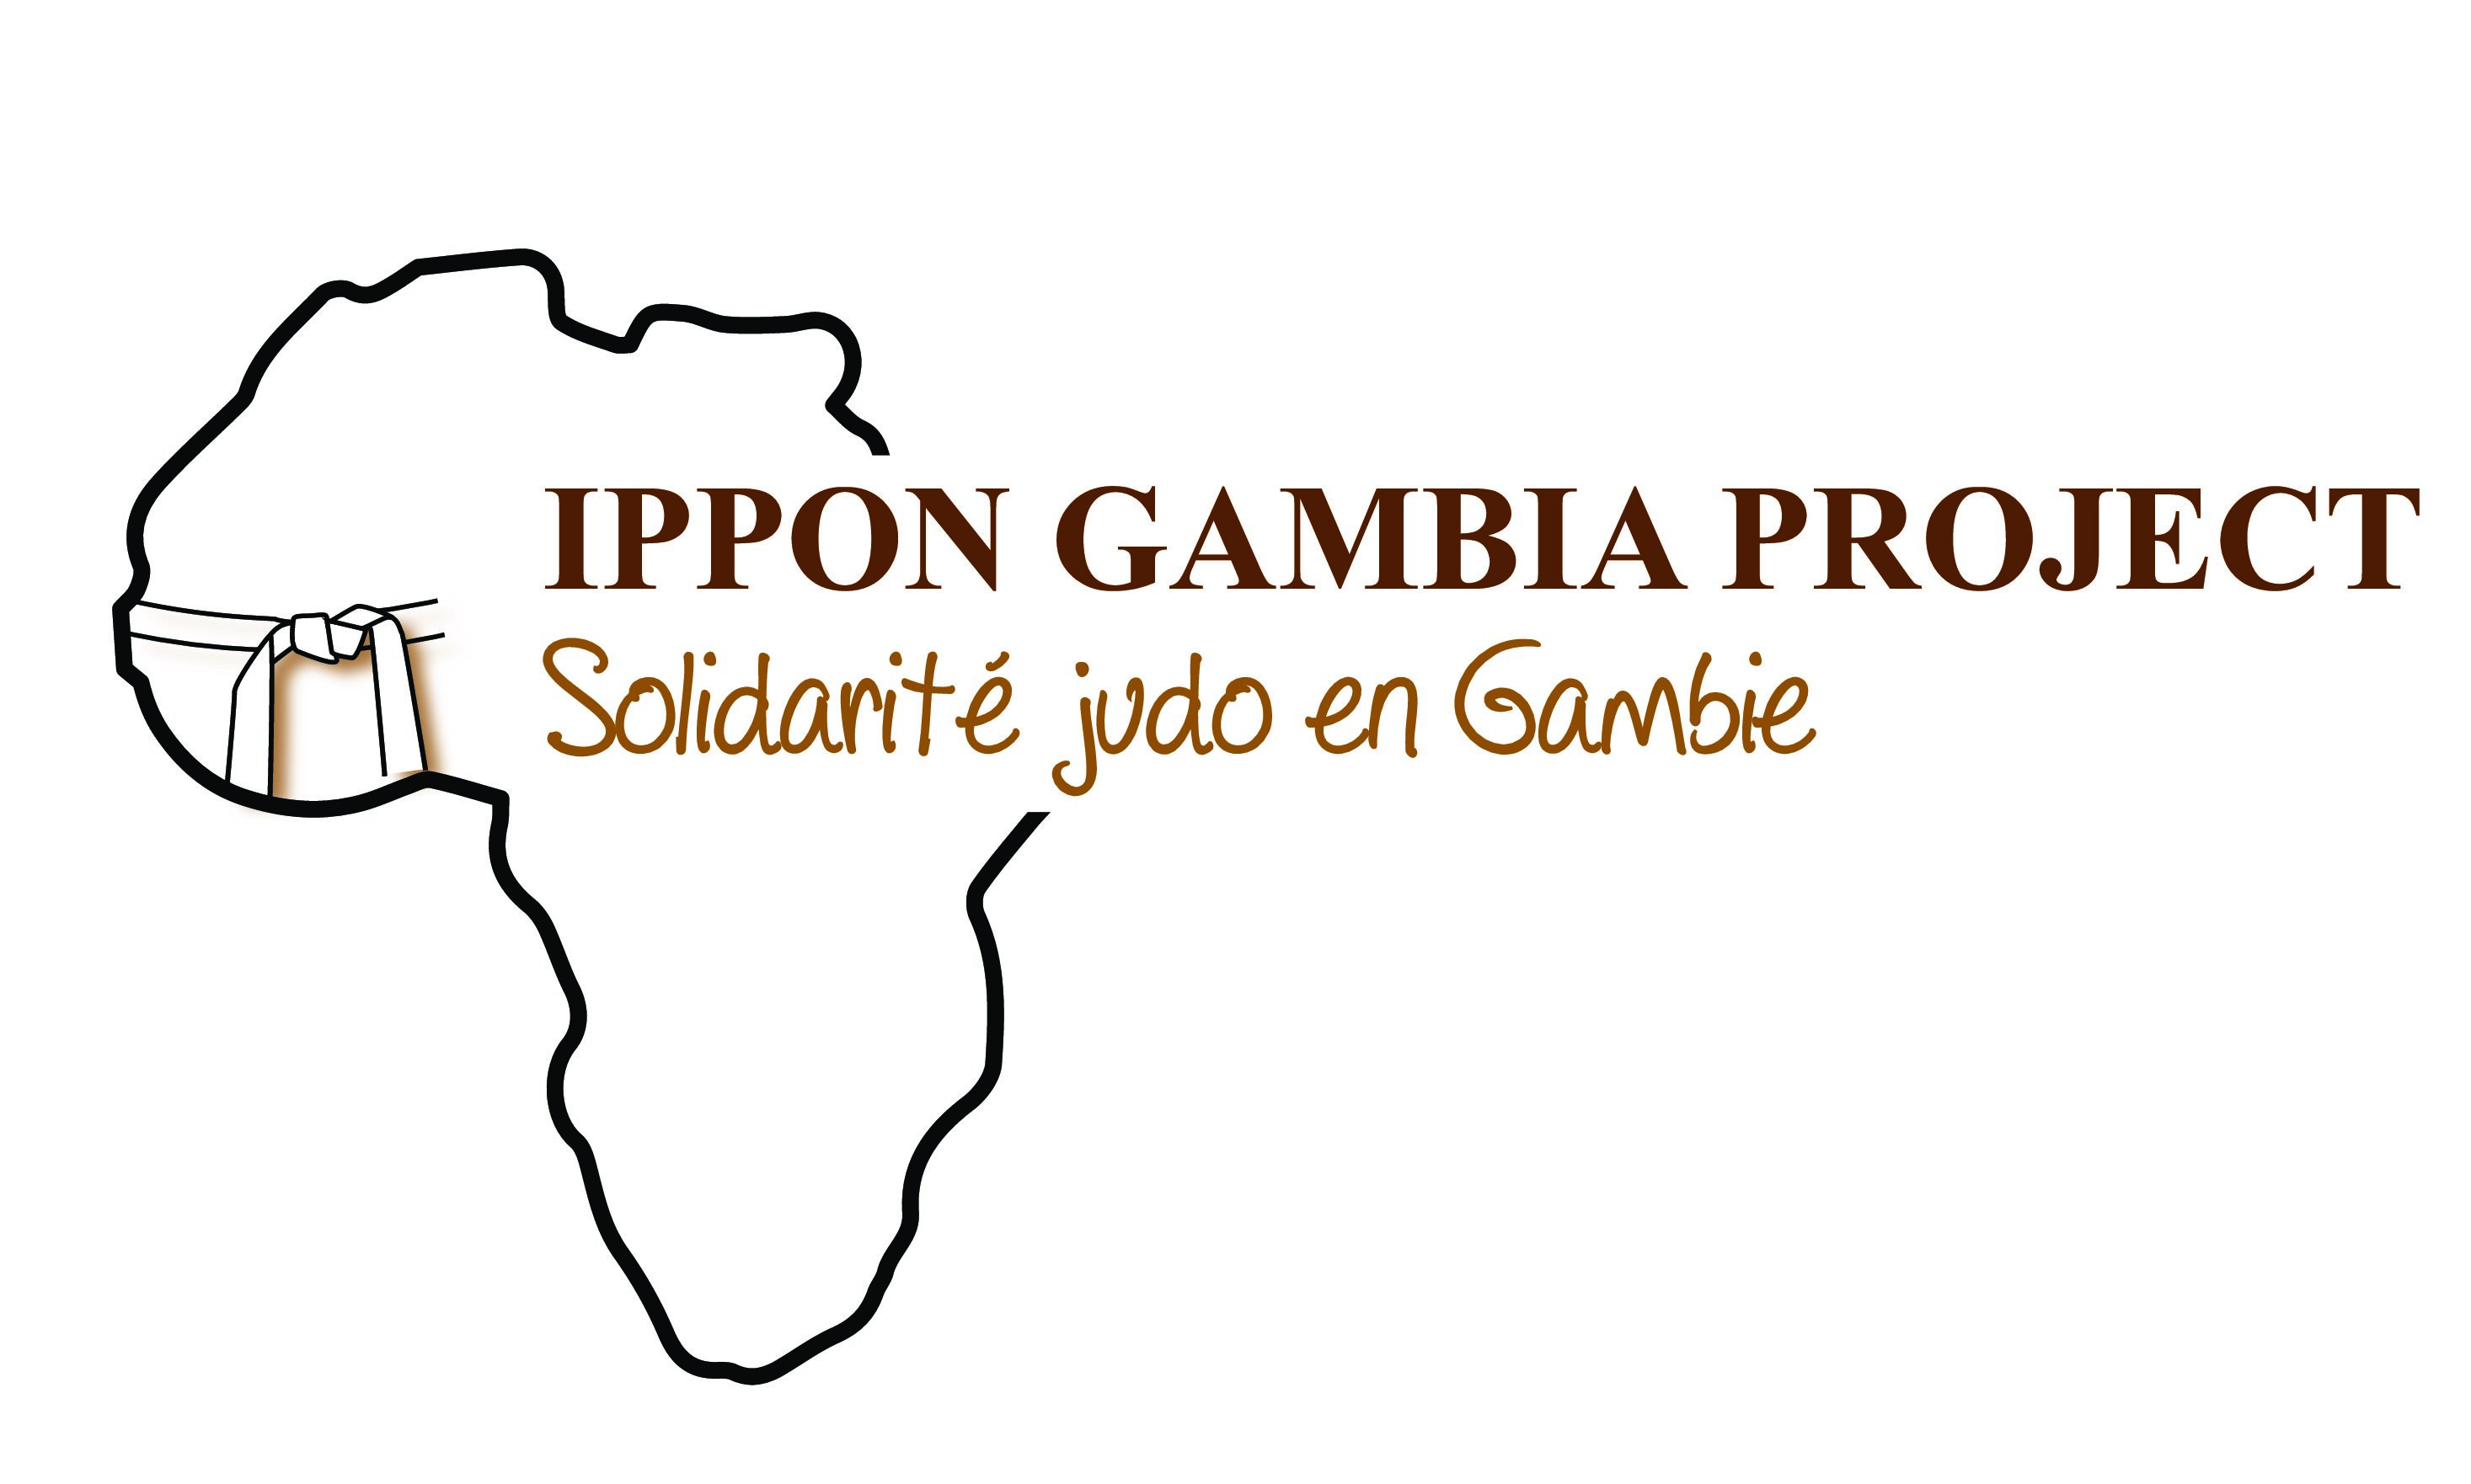 Ippon Gambia Project